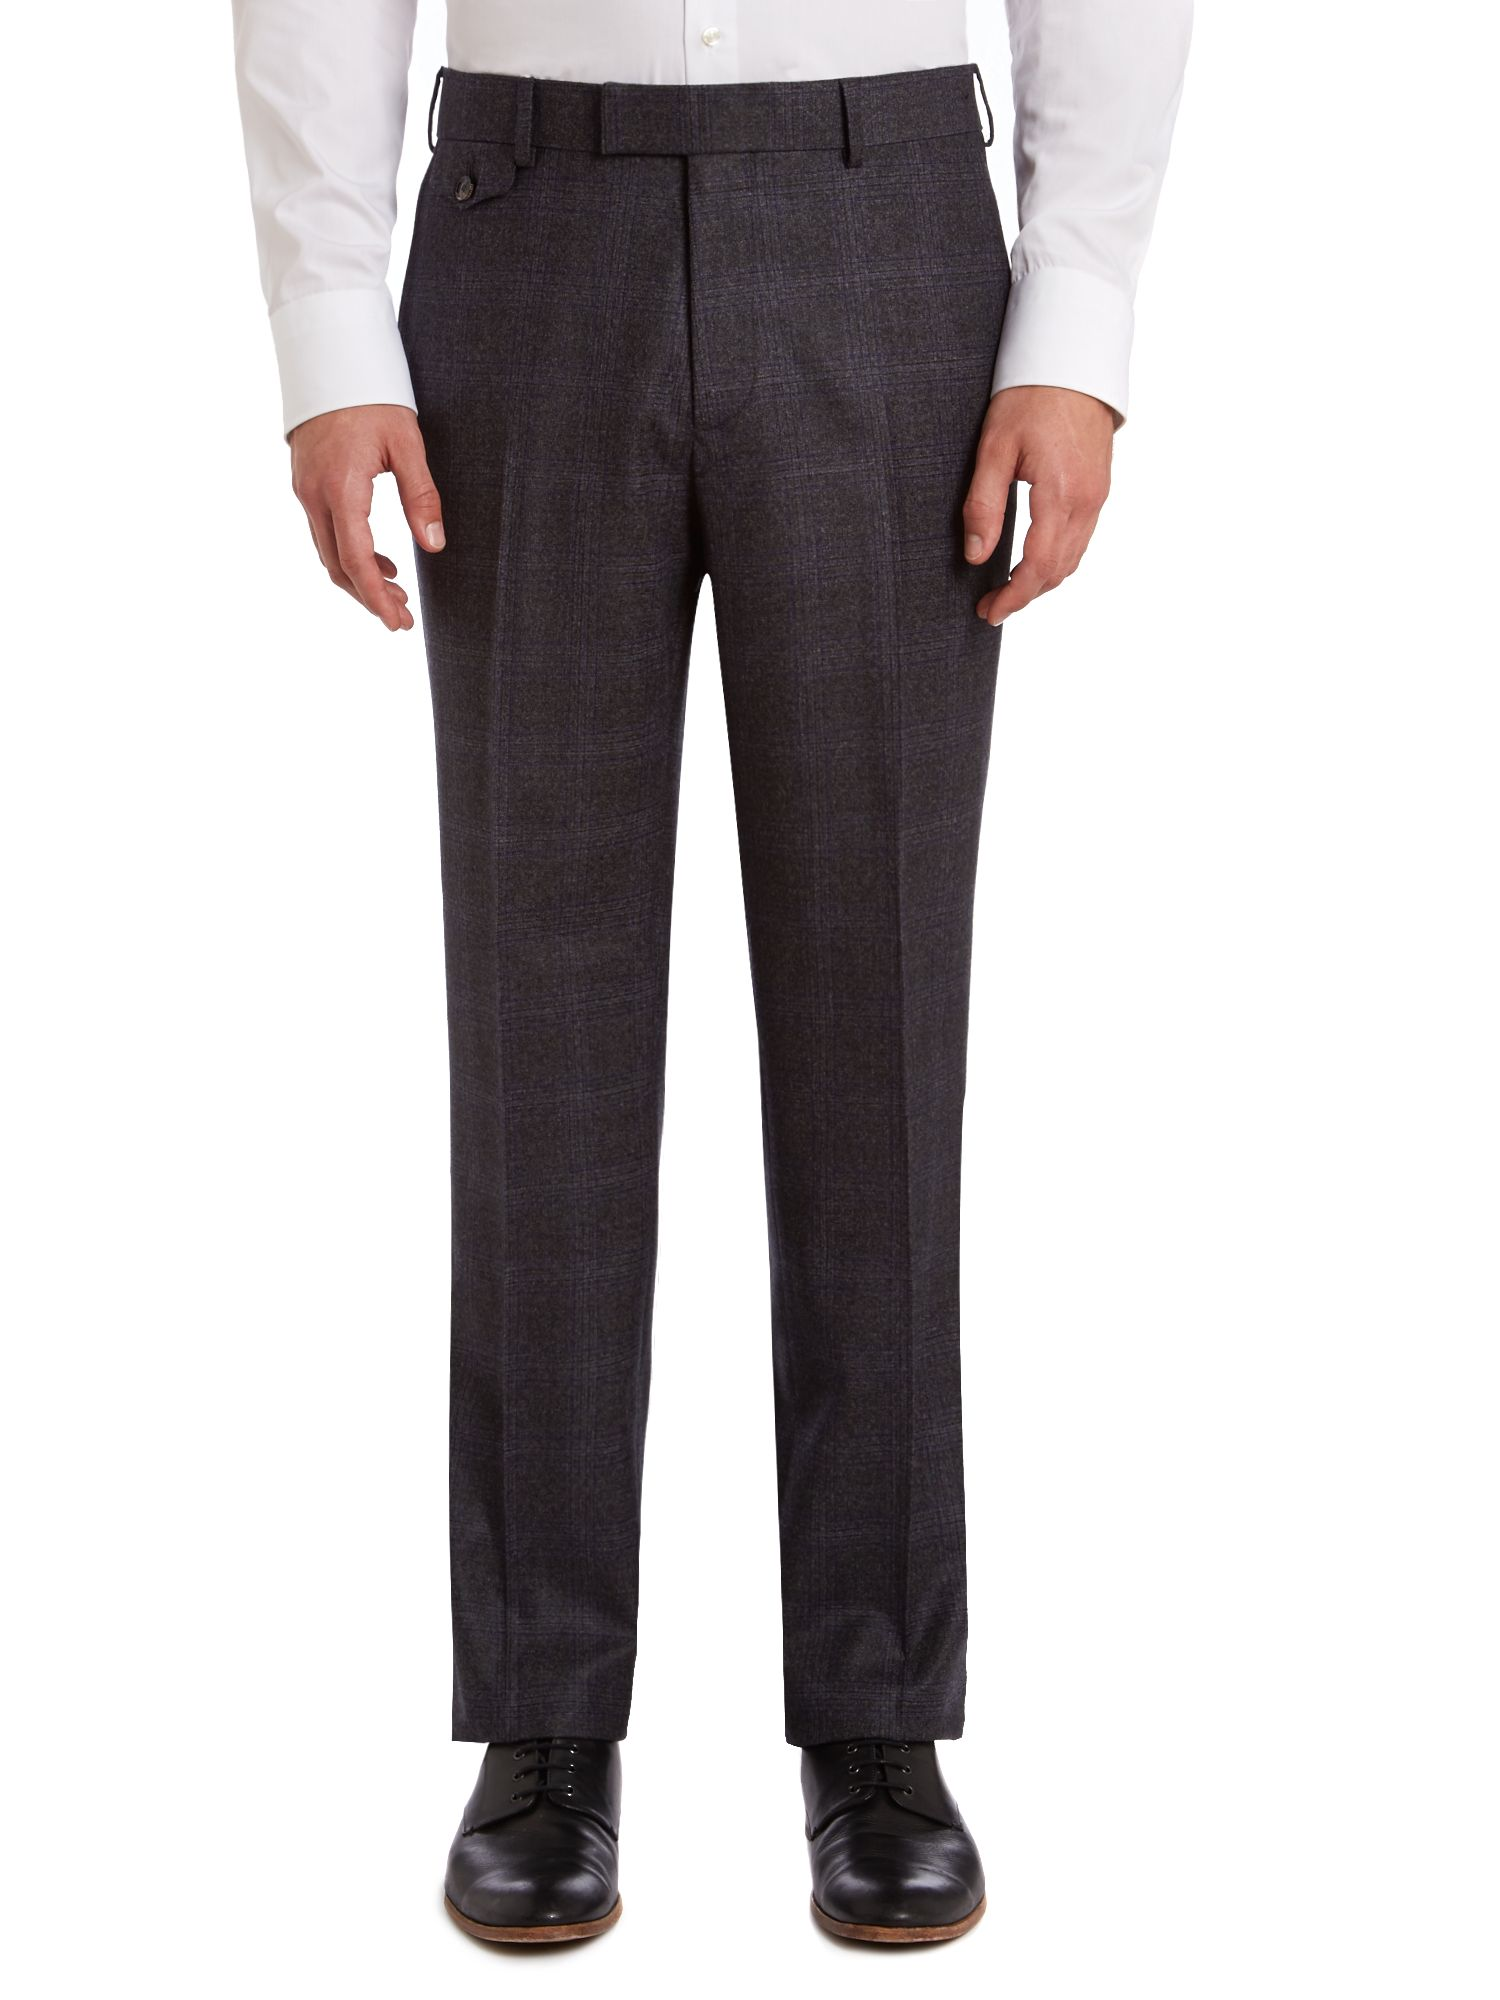 Lashup sterling regular fit check suit trousers